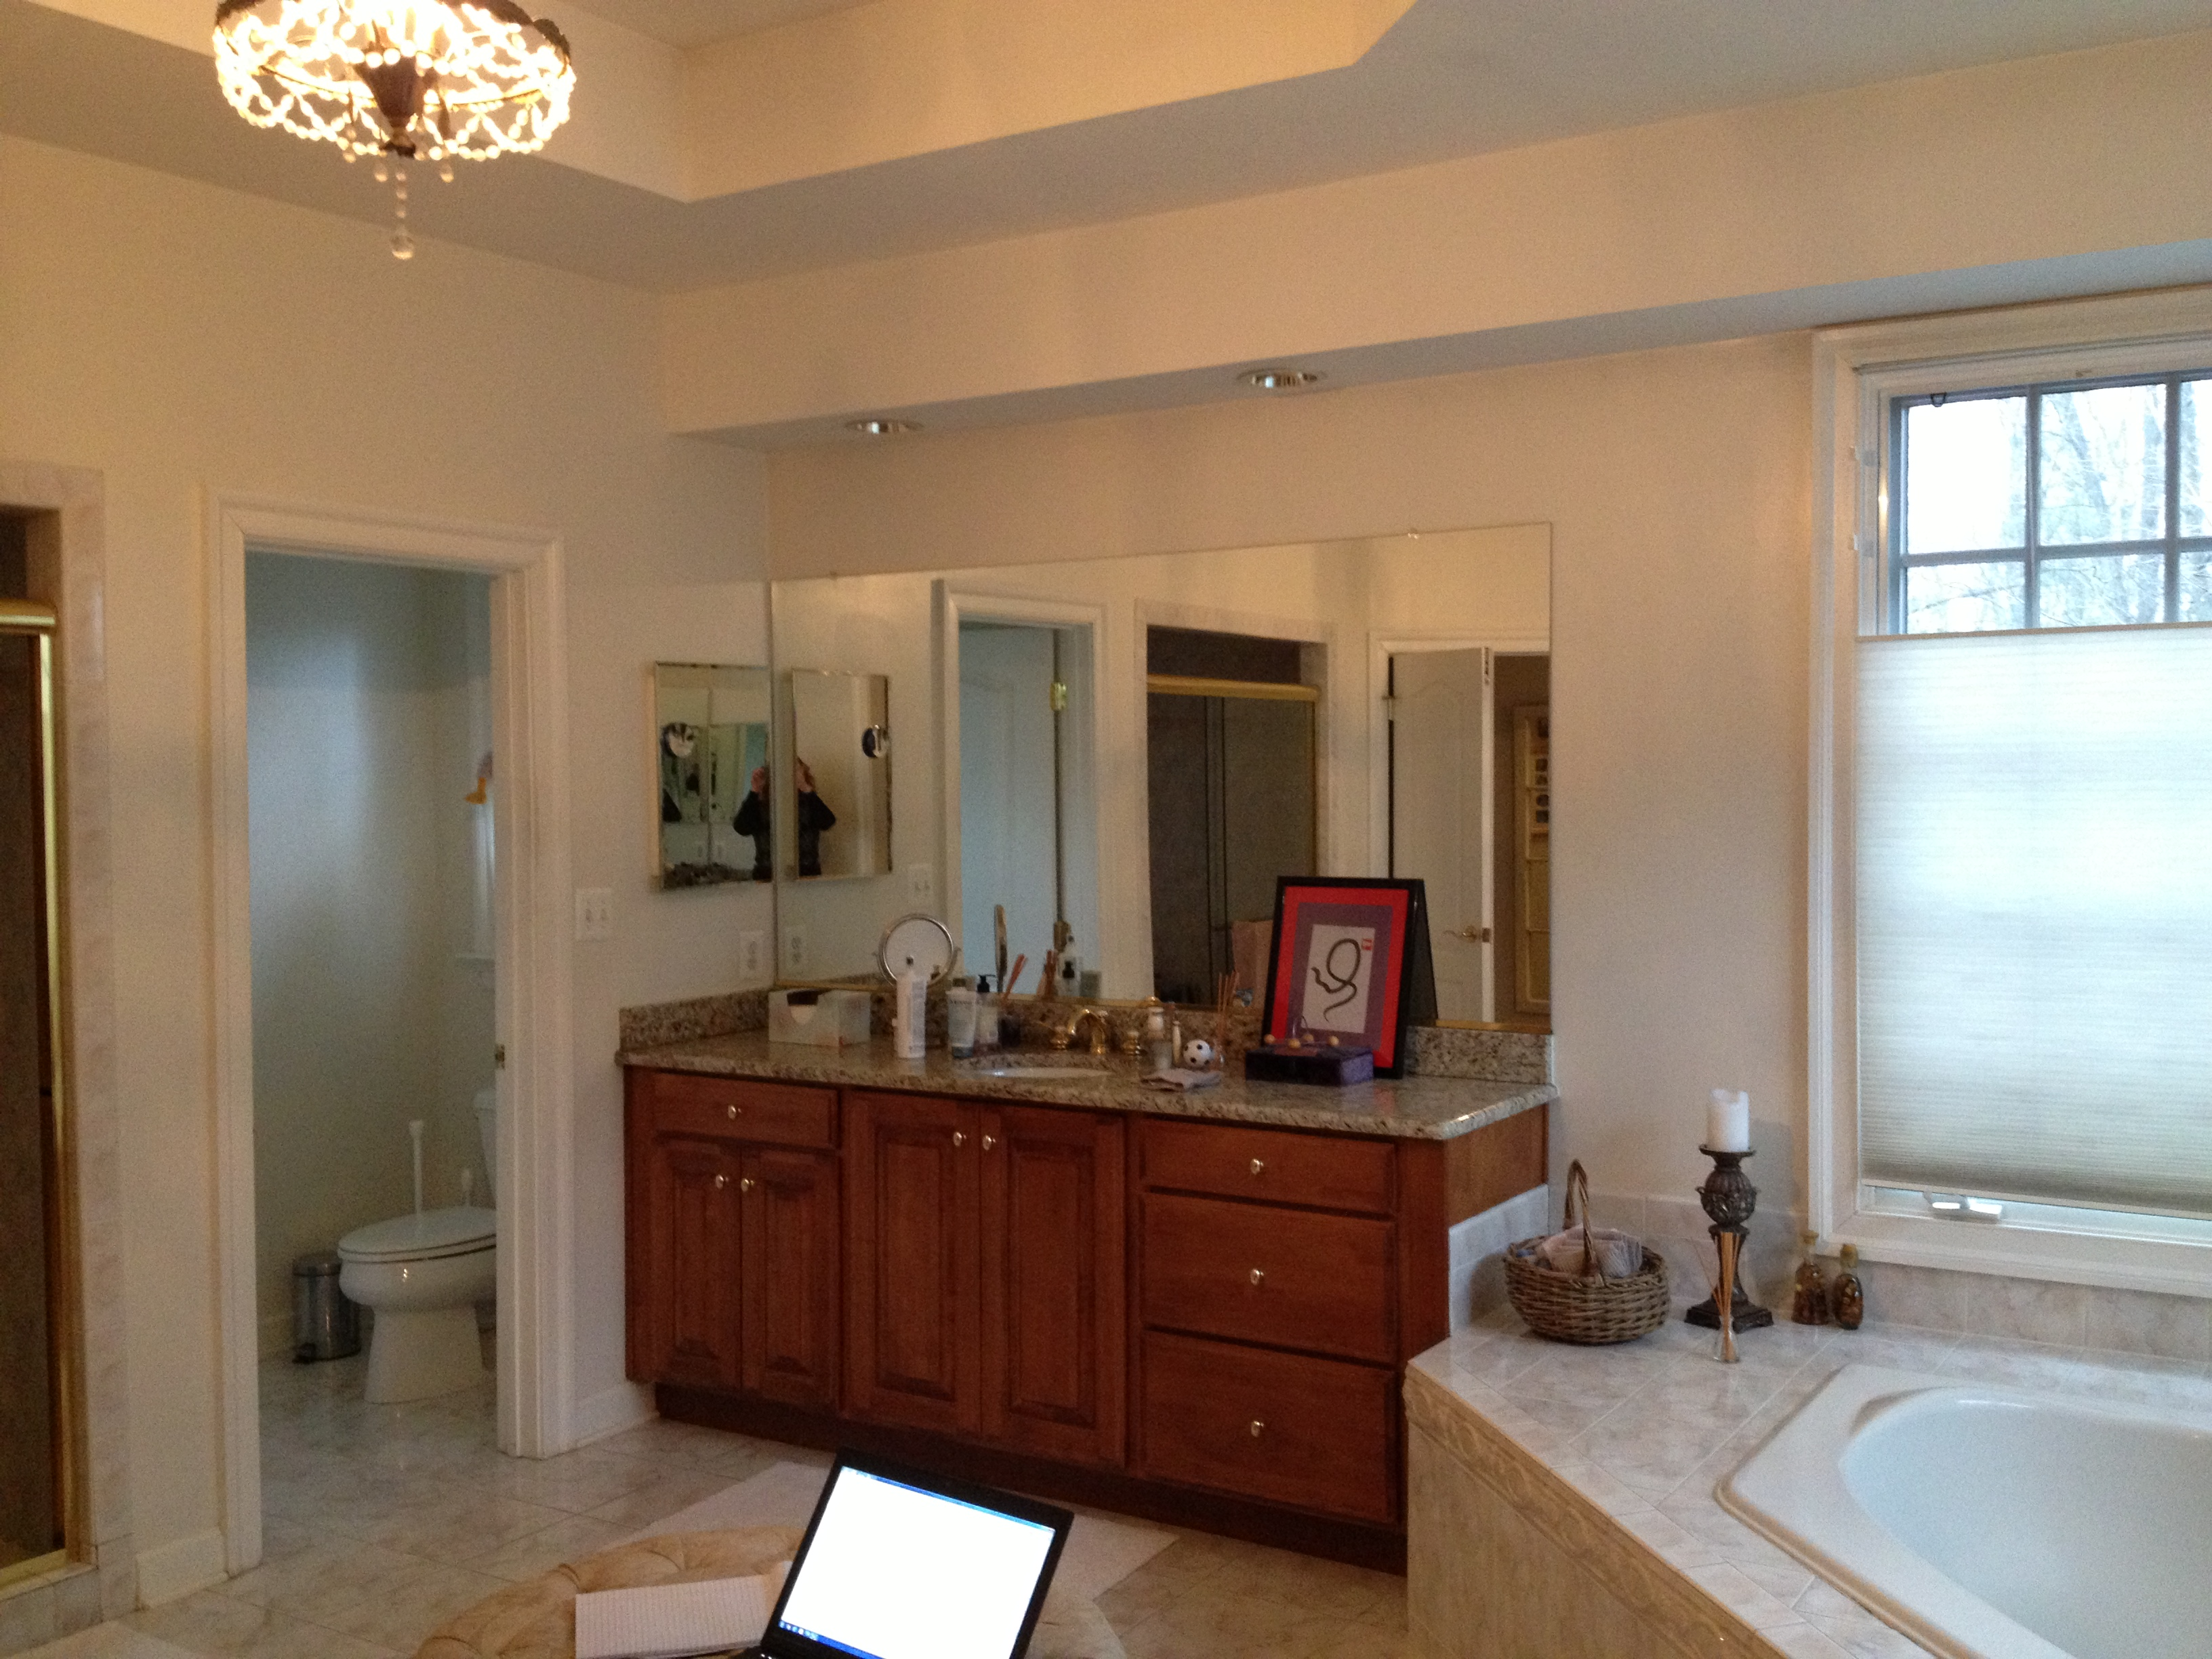 Bath Remodeling Northern Virginia master bathroom renovation in northern virginia | remodeling